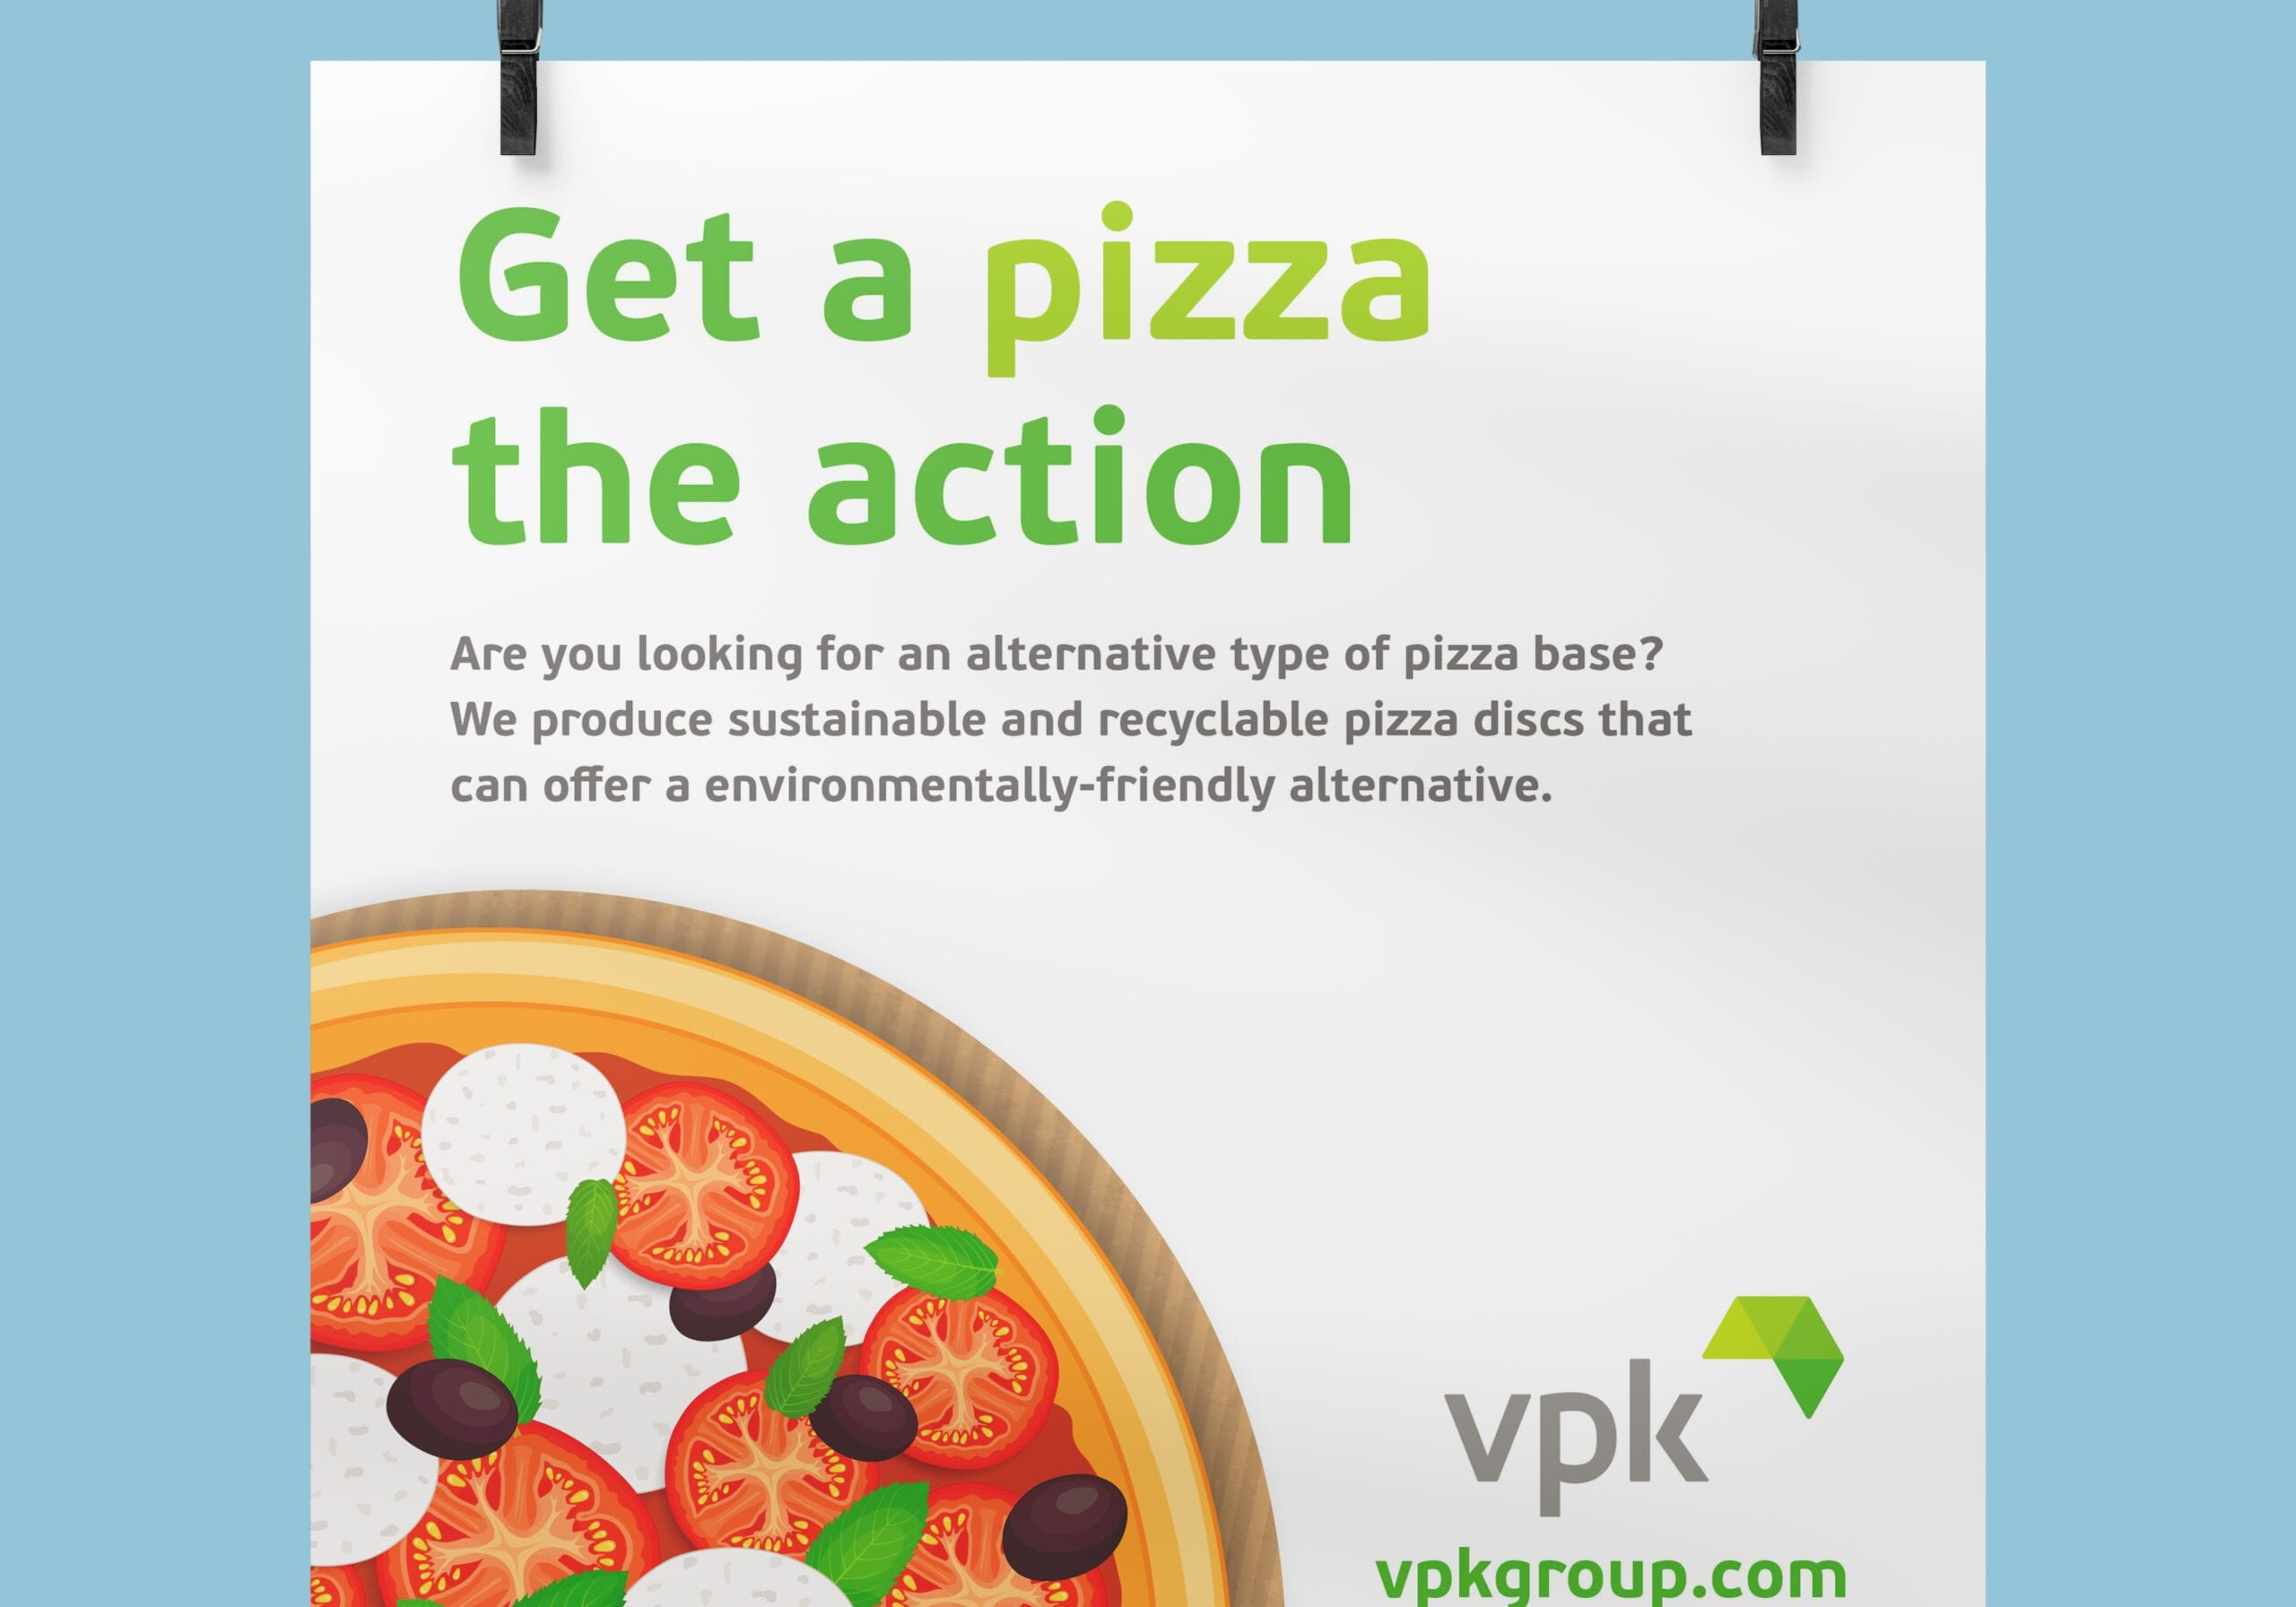 Social media post for VPK about their cardboard alternative pizza bases